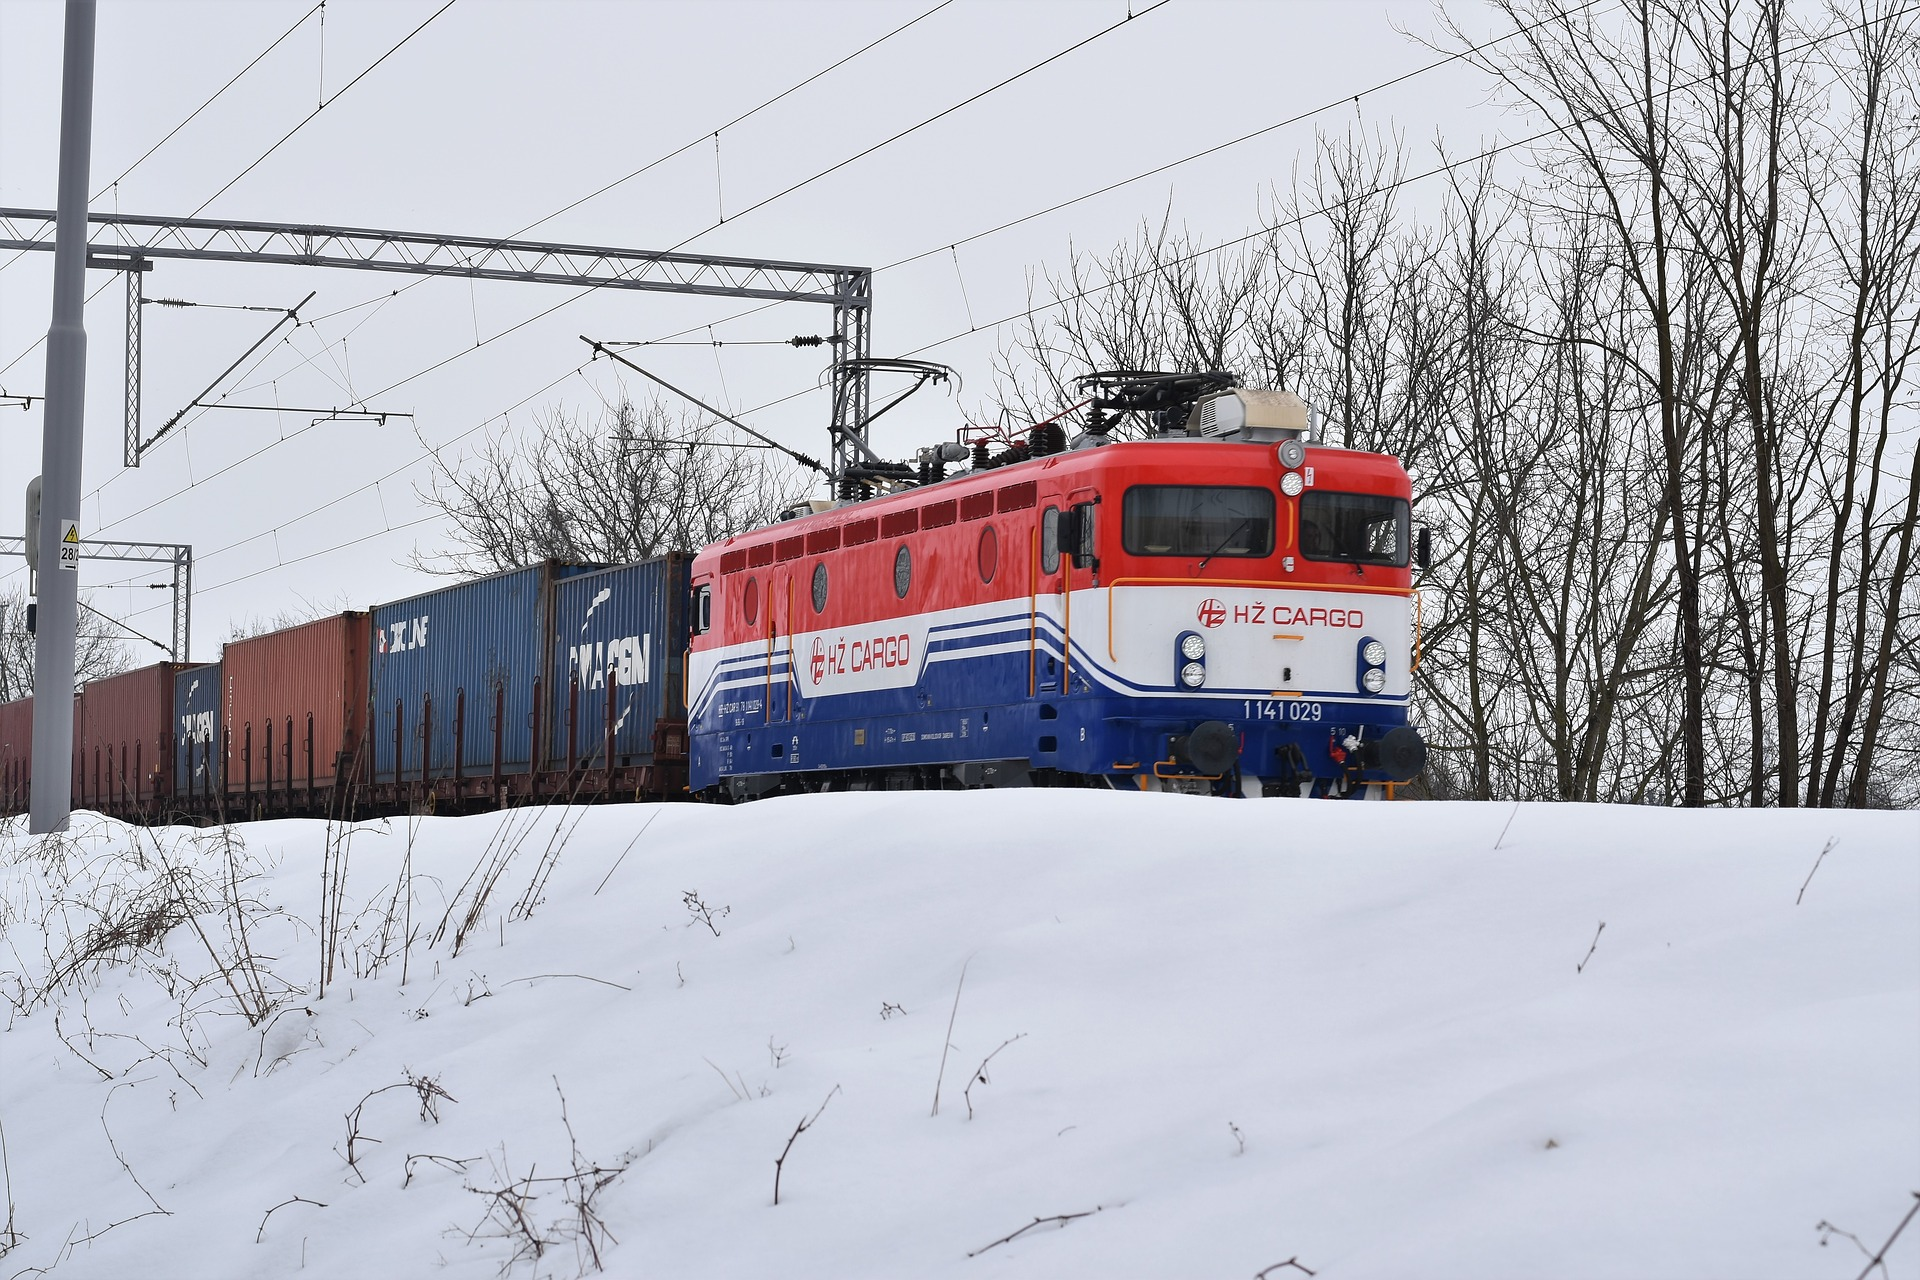 https://speed-trust.com/wp-content/uploads/2018/04/colorful-train-in-snow-3198703_1920-2.jpg